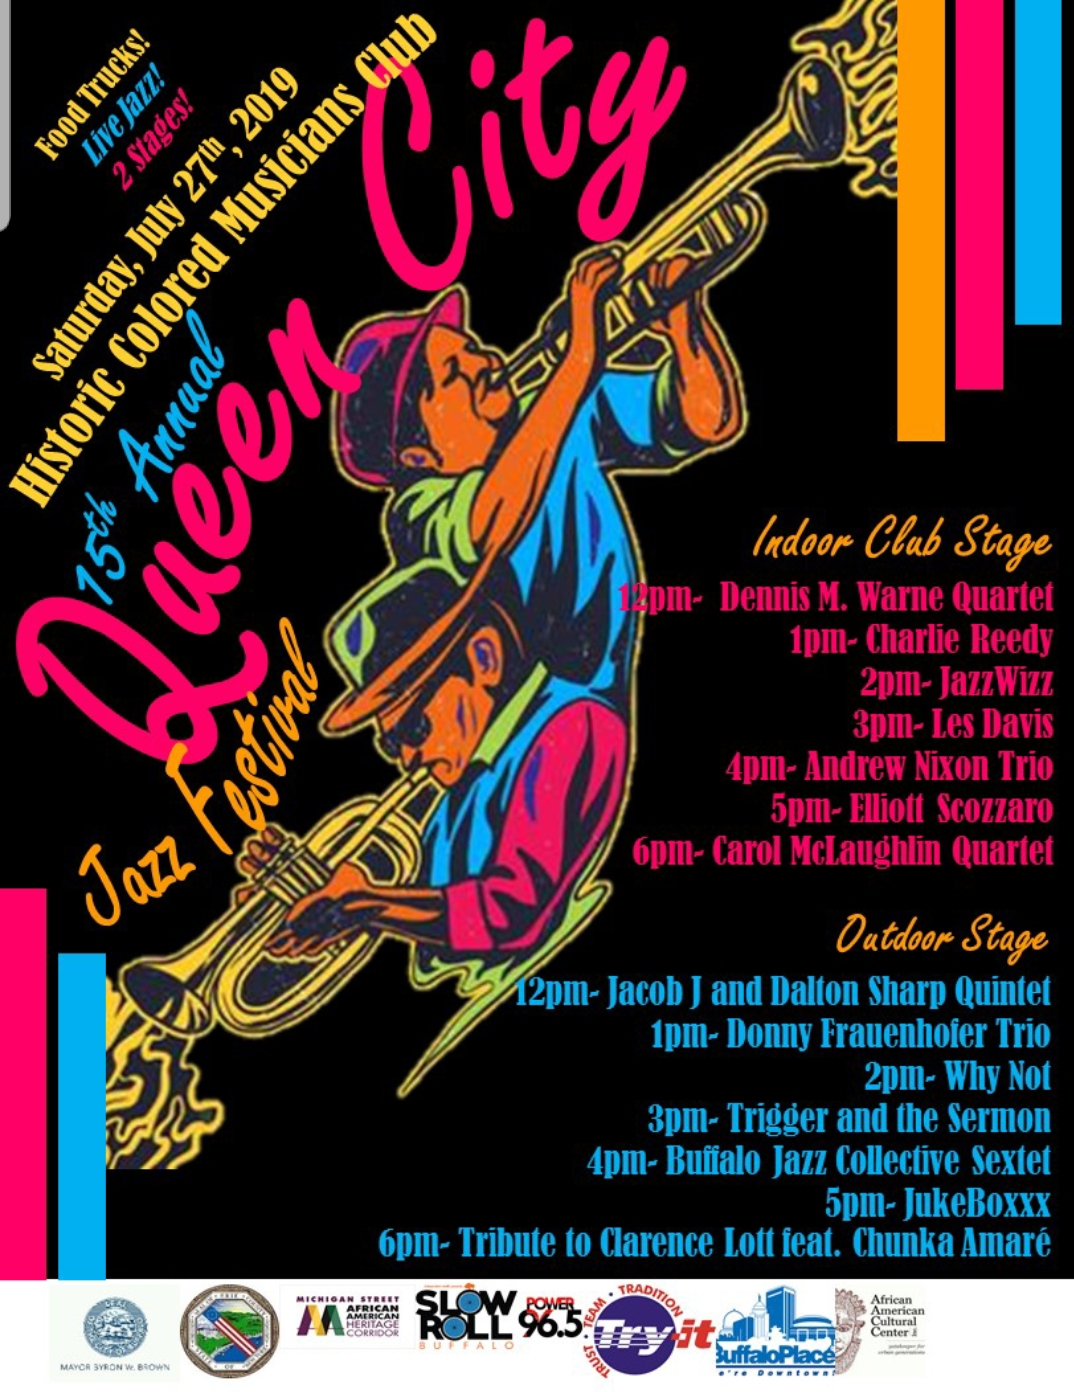 The Queen City Jazz Festival At The Historic Colored